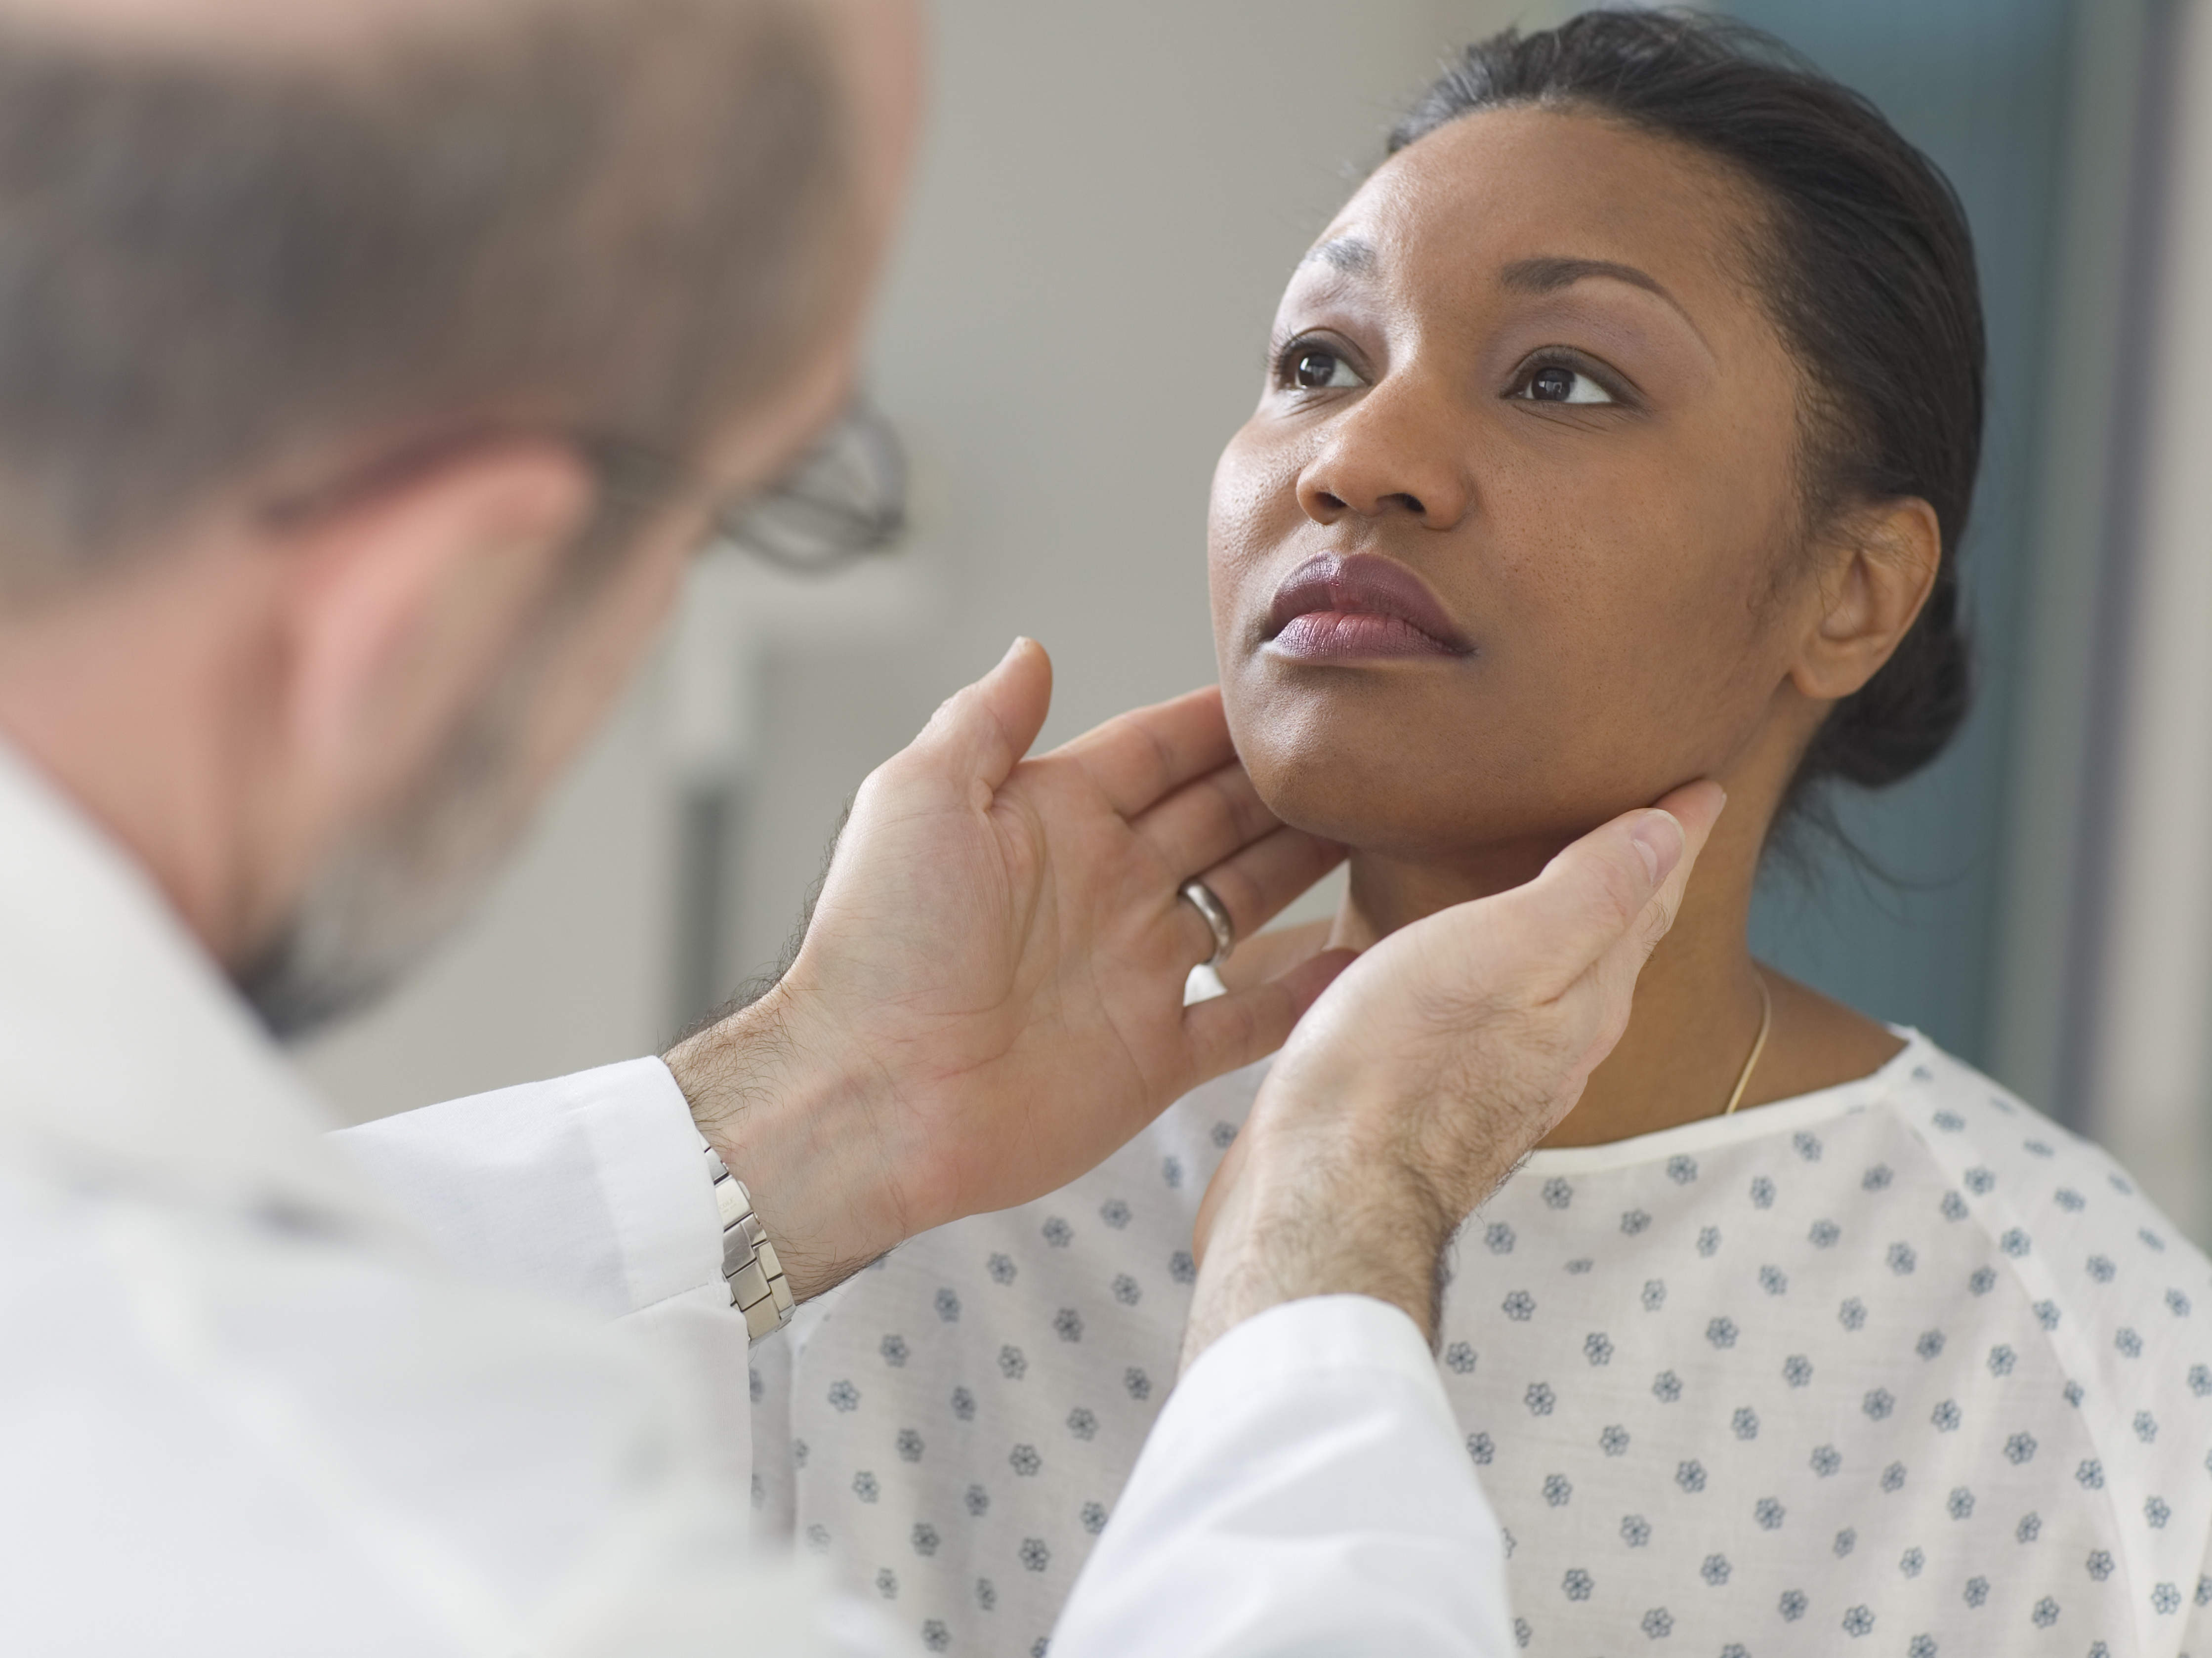 Is your thyroid out of whack recommendations